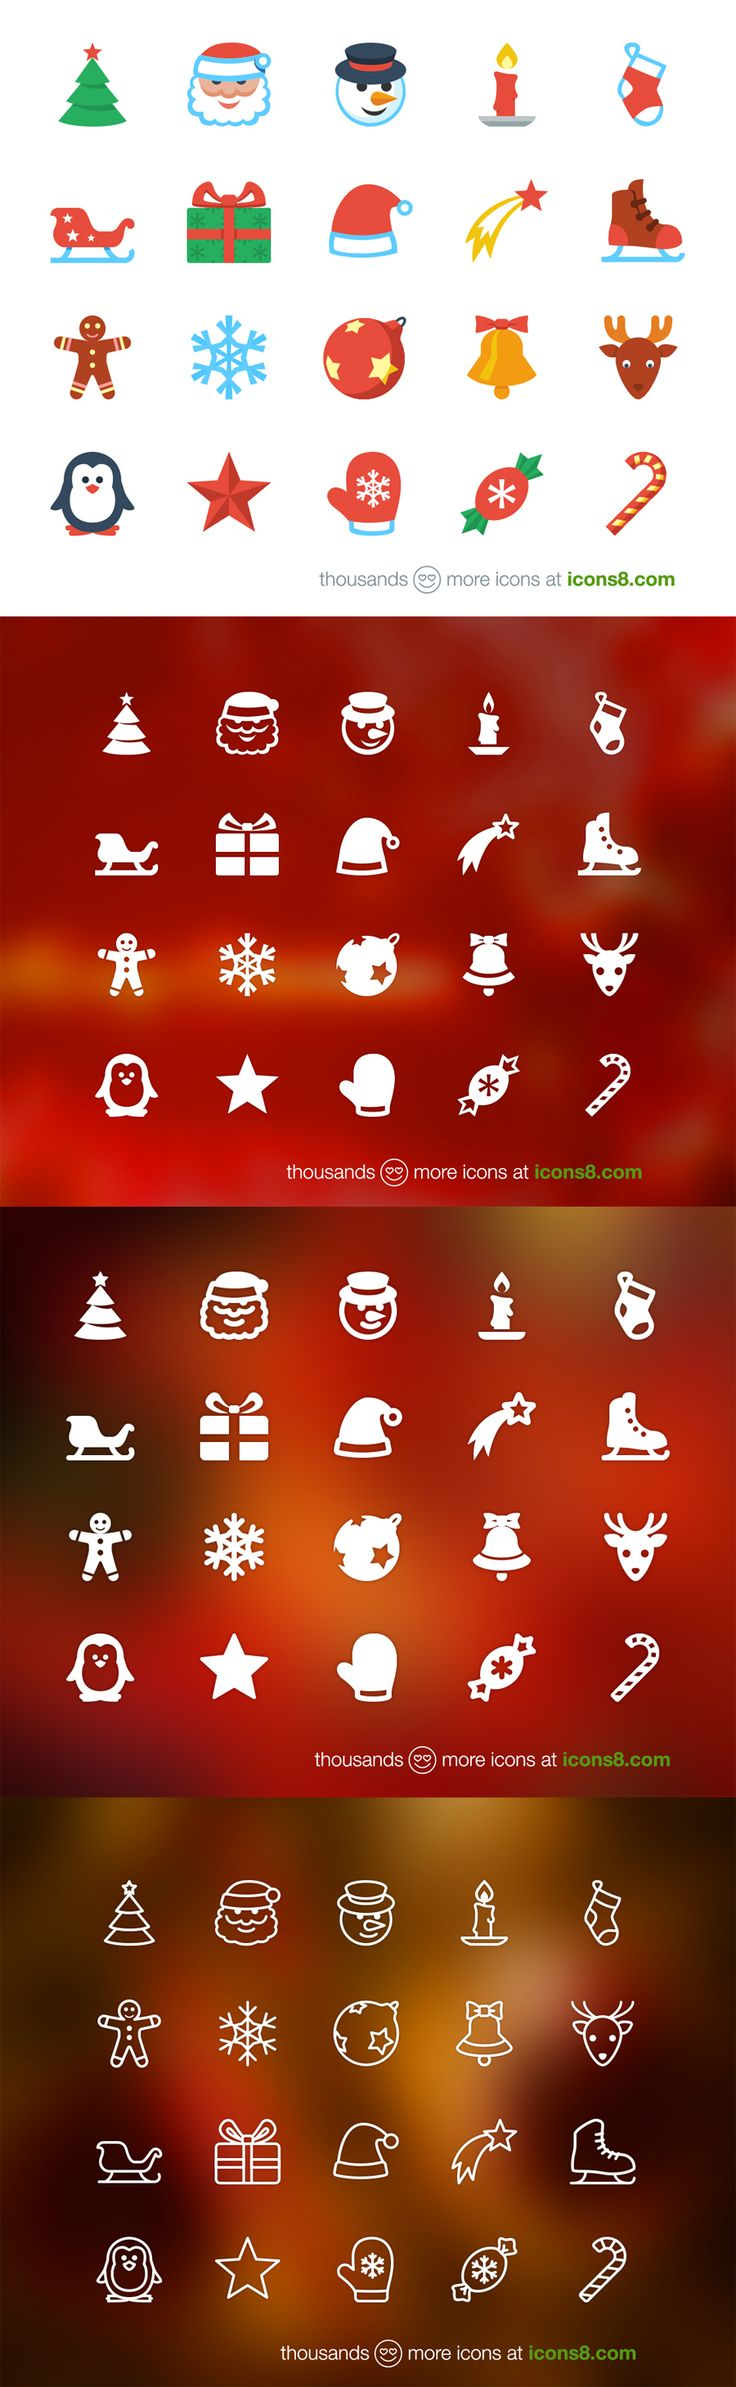 Free Flat Christmas Icons - 4 Styles